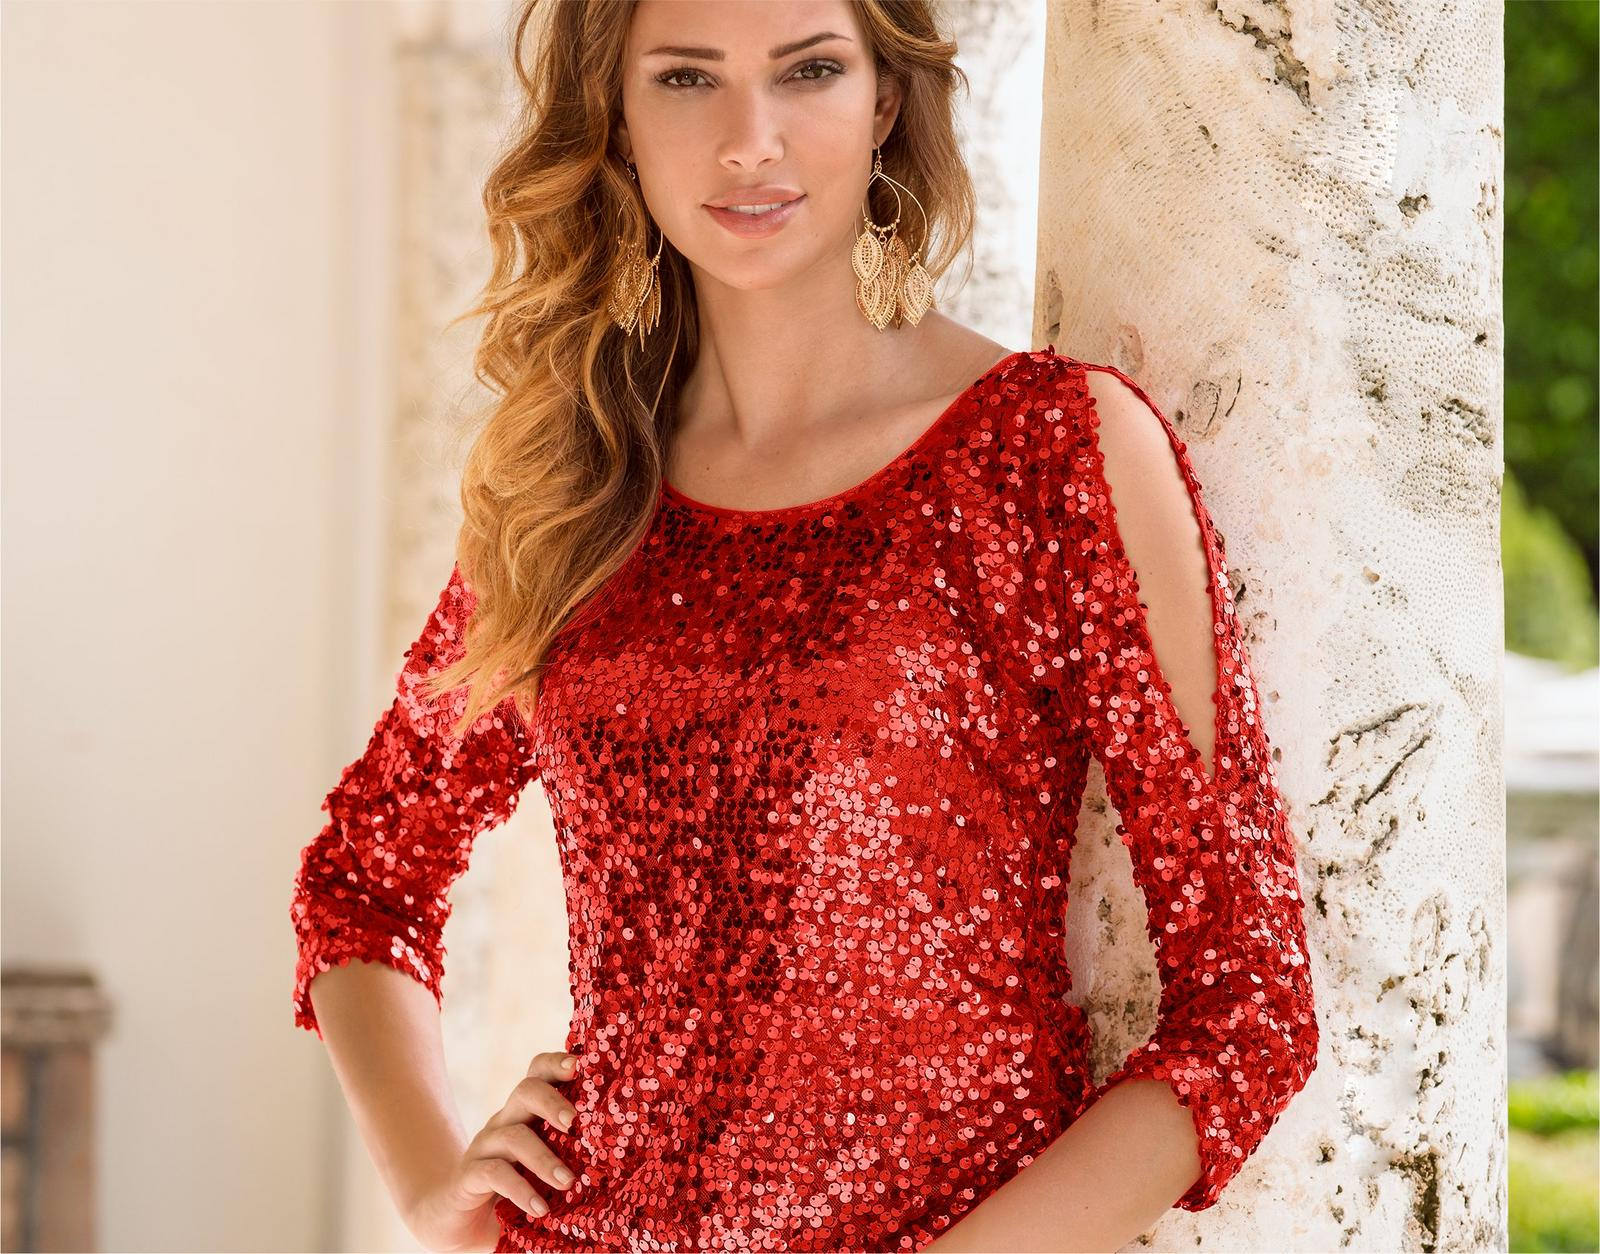 model wearing red sequin cold shoulder top with gold earrings.